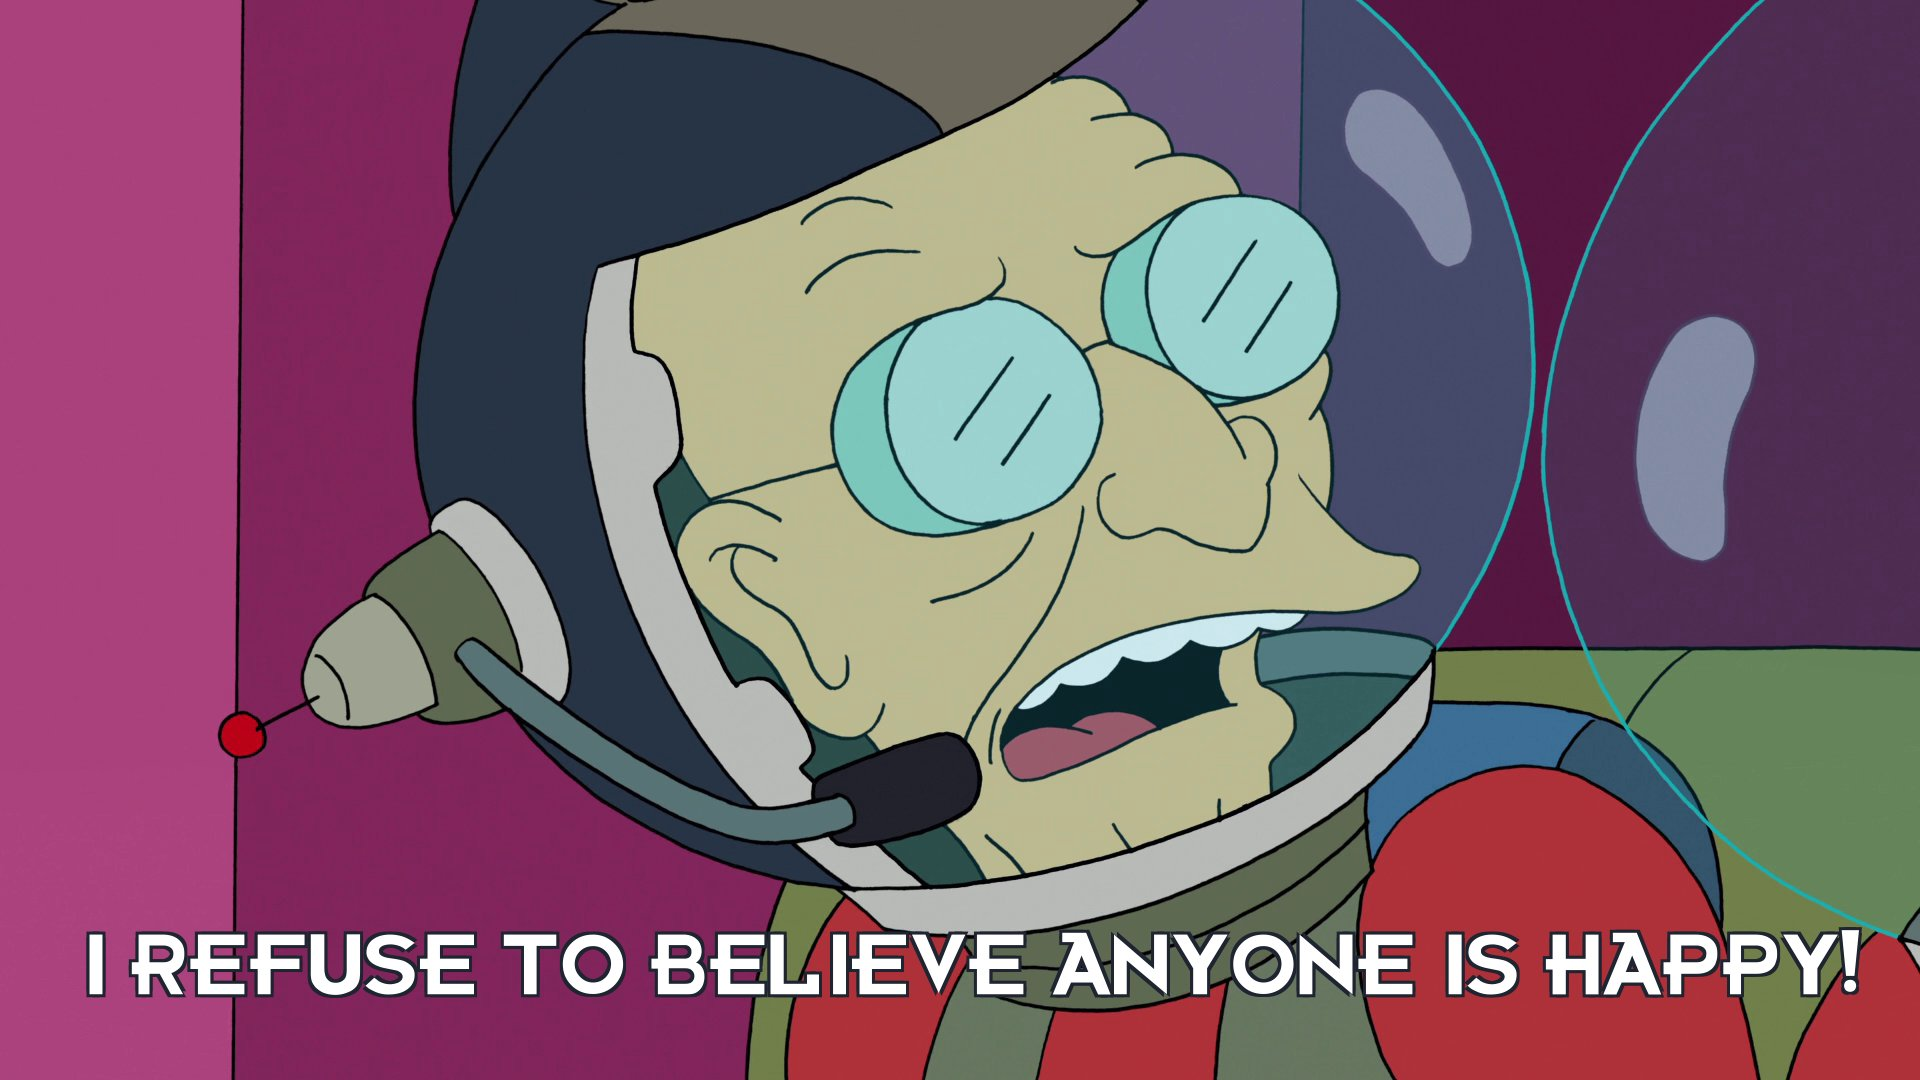 Prof Hubert J Farnsworth: I refuse to believe anyone is happy!